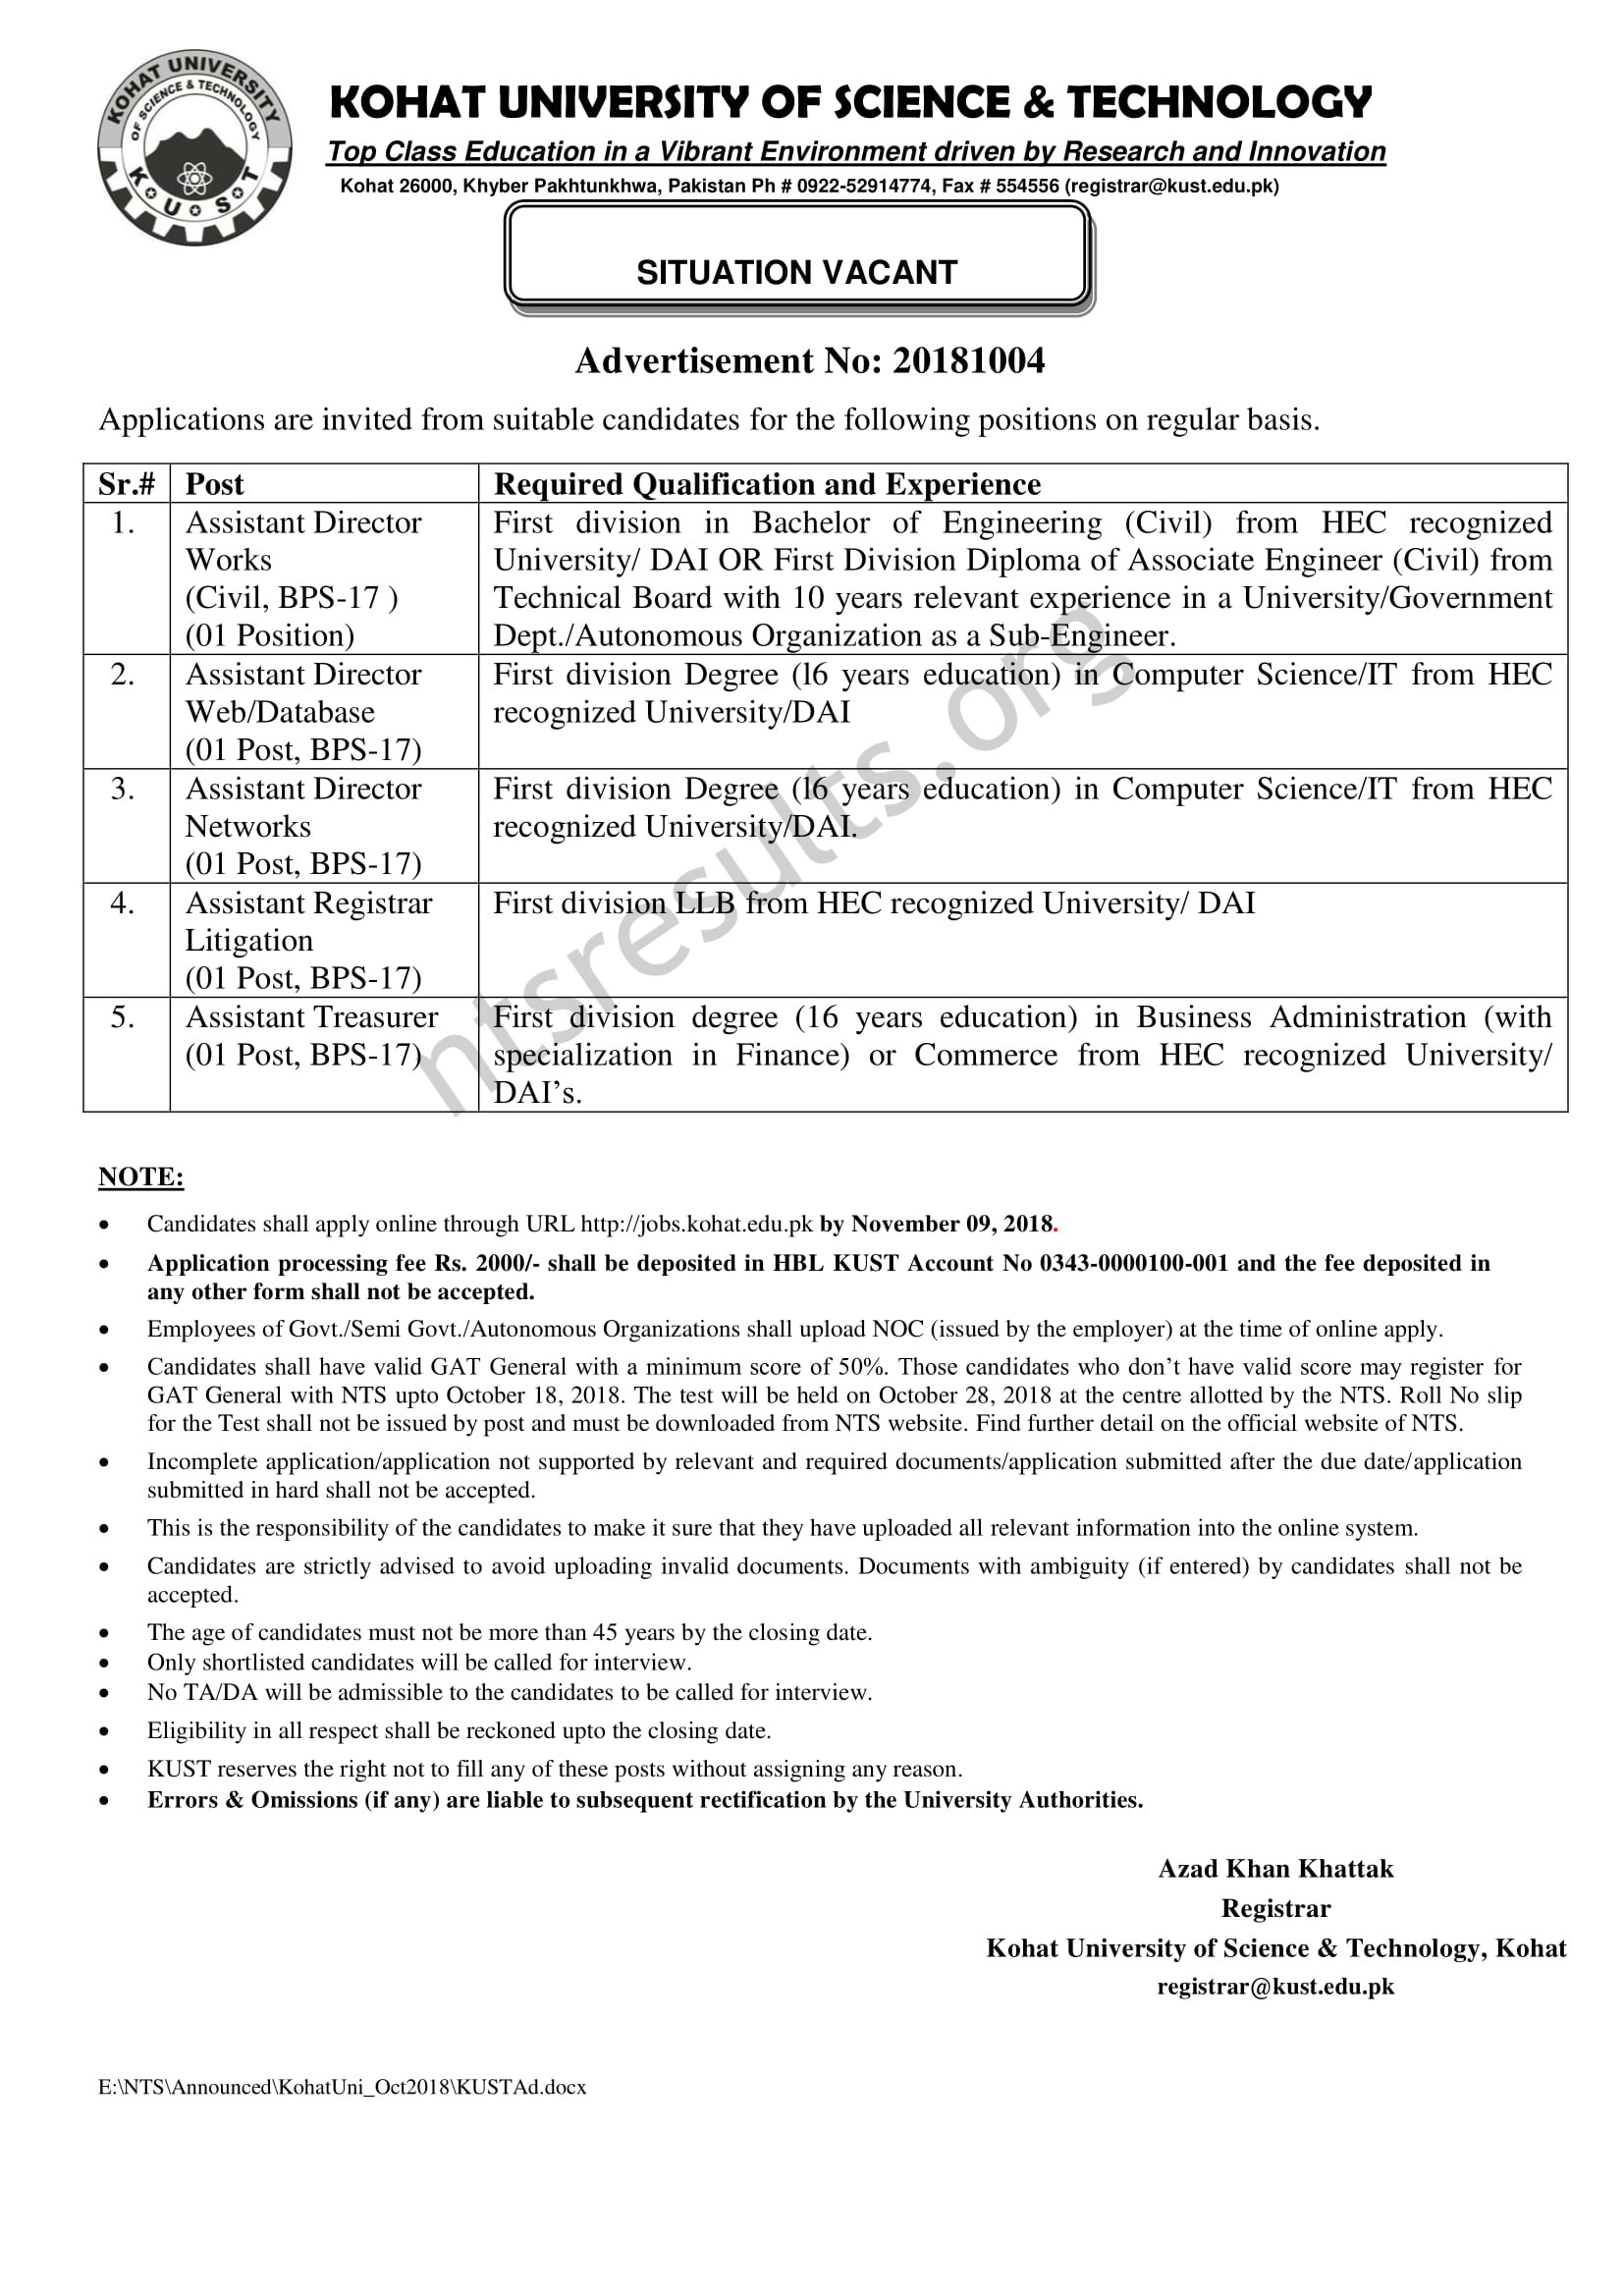 Kohat University of Science Technology KUST Jobs Via NTS